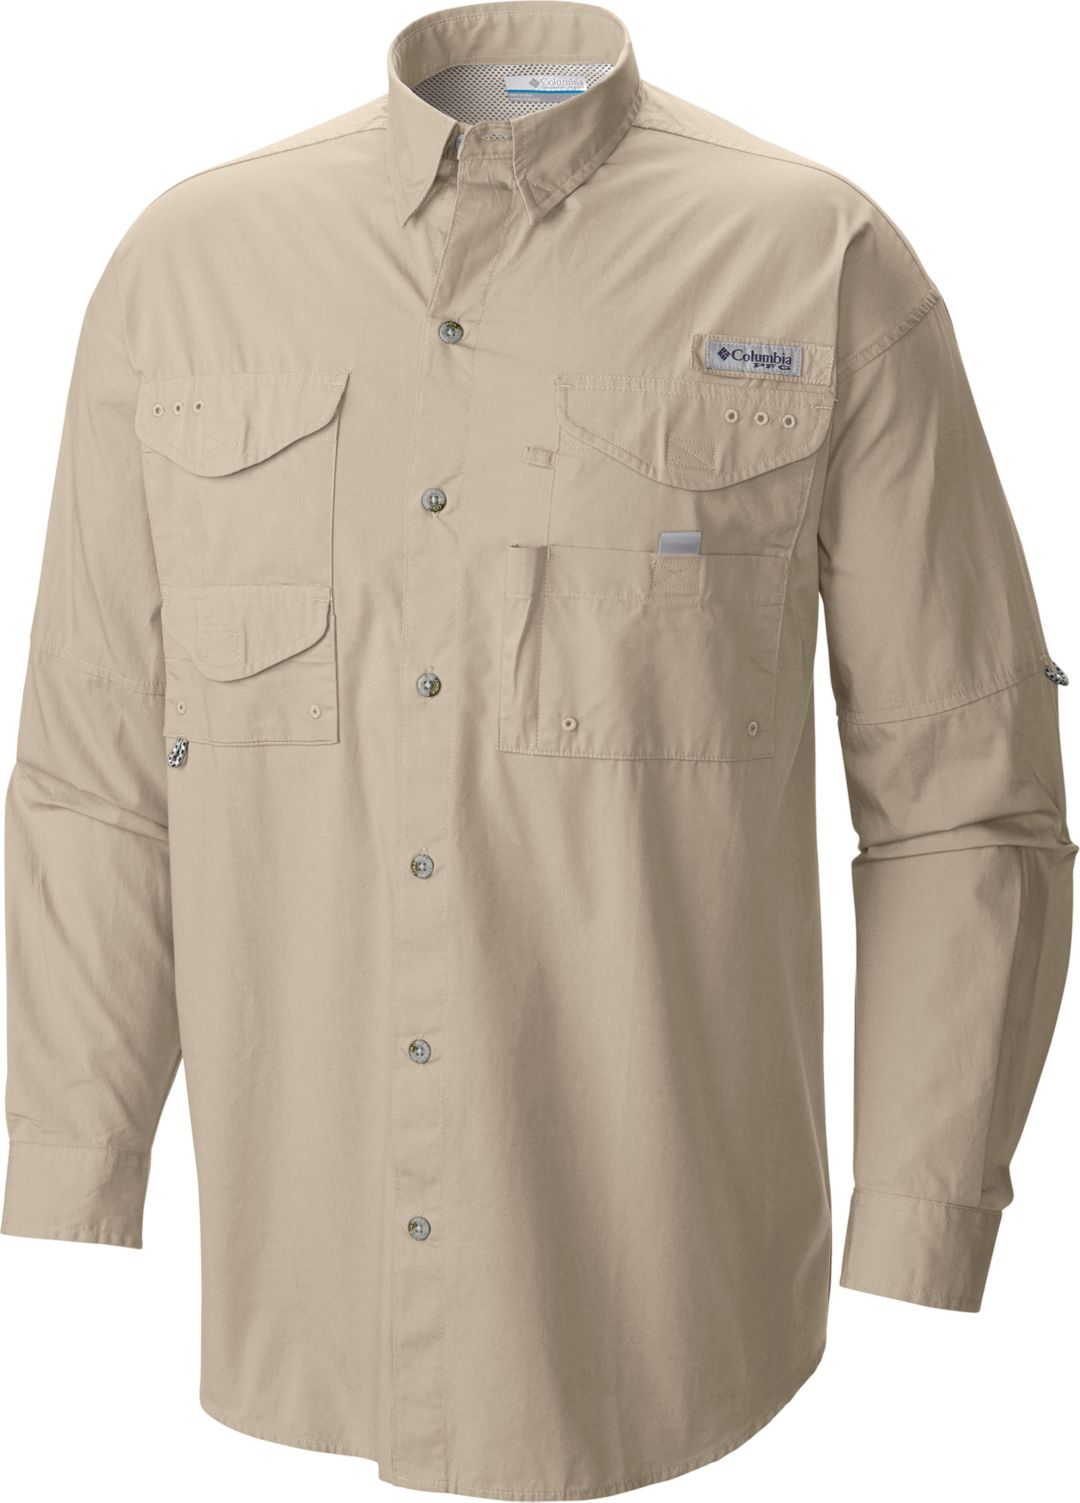 bdafb231 Columbia Men's PFG Super Bonehead Classic Long Sleeve Shirt | Field ...